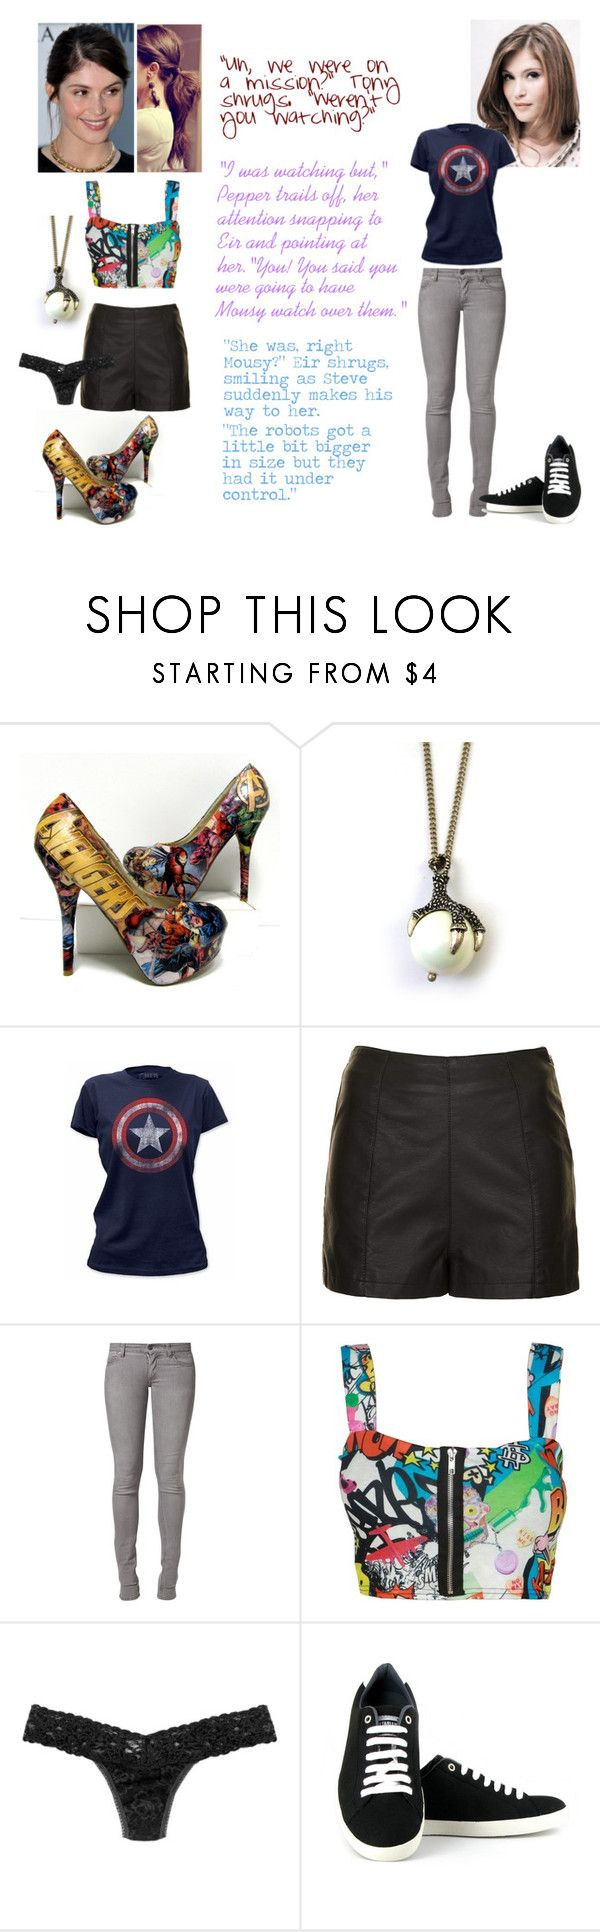 """""""A Second Chance- Chapter Twenty-Three"""" by crossxover ❤ liked on Polyvore featuring Topshop, Cheap Monday, Hanky Panky, Vegetarian Shoes, harrypotter, Avengers, fanfiction, theavengers and crossover"""